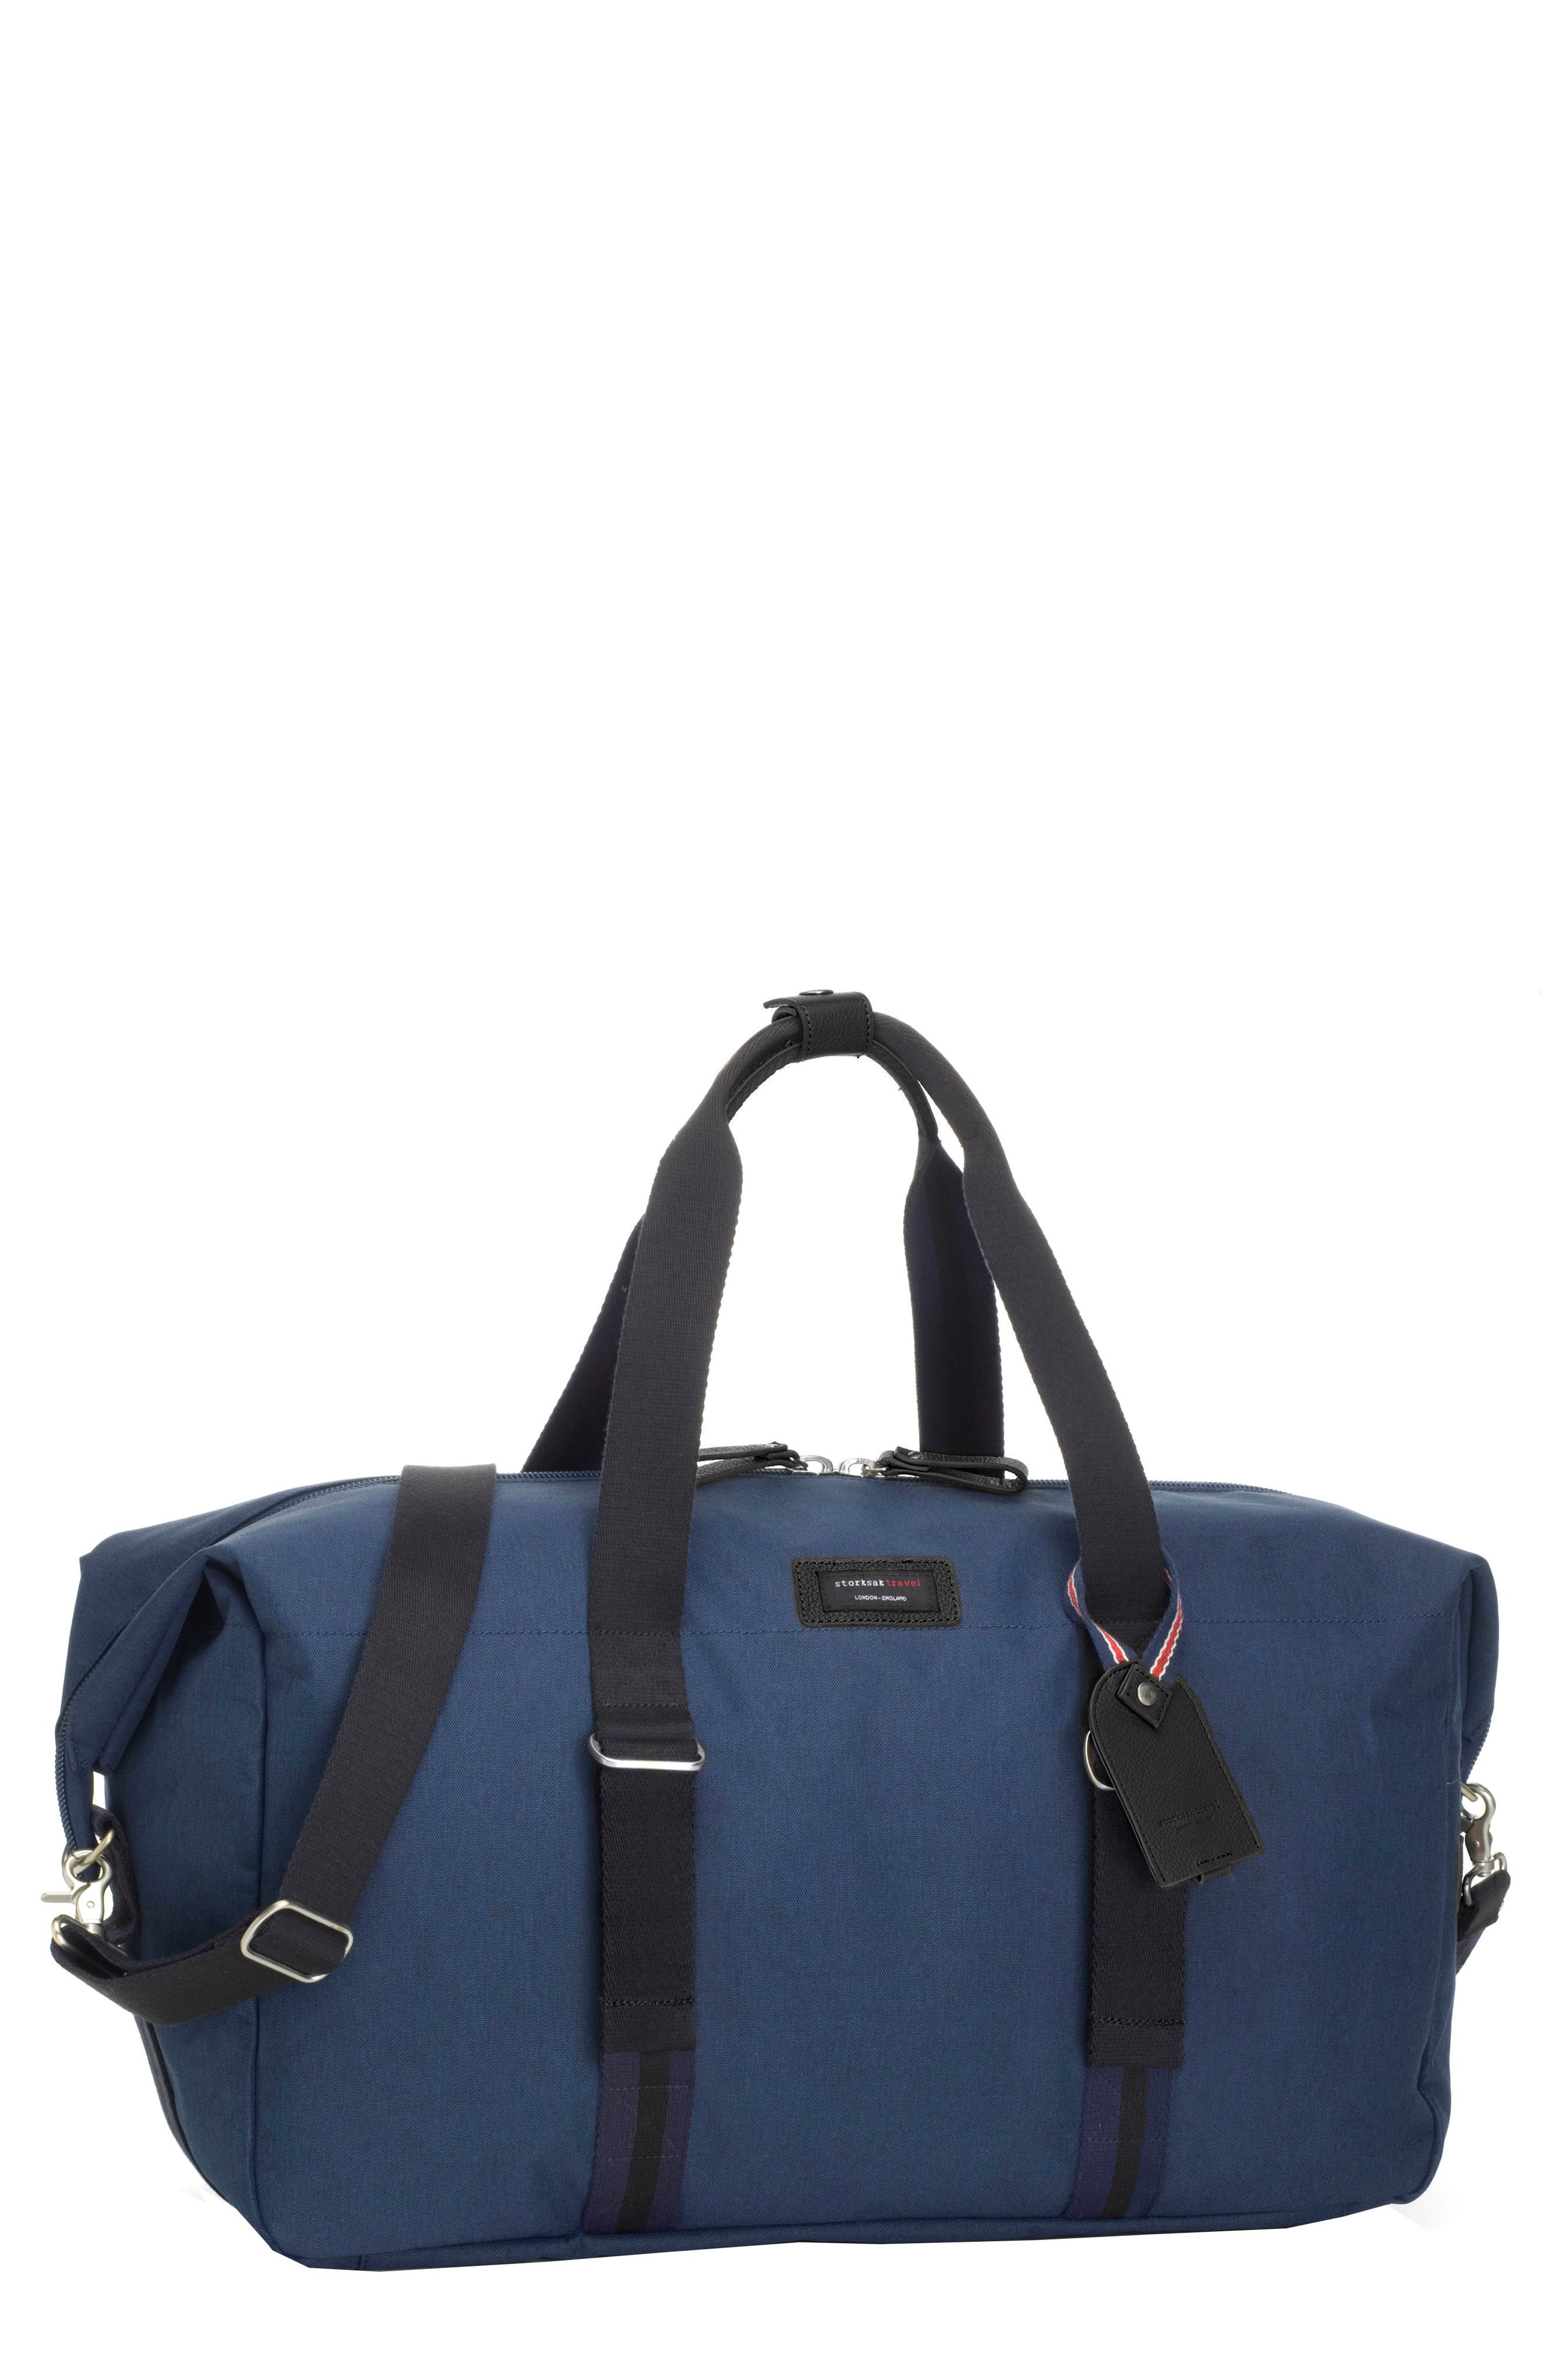 Travel Duffel with Hanging Organizer,                         Main,                         color, NAVY